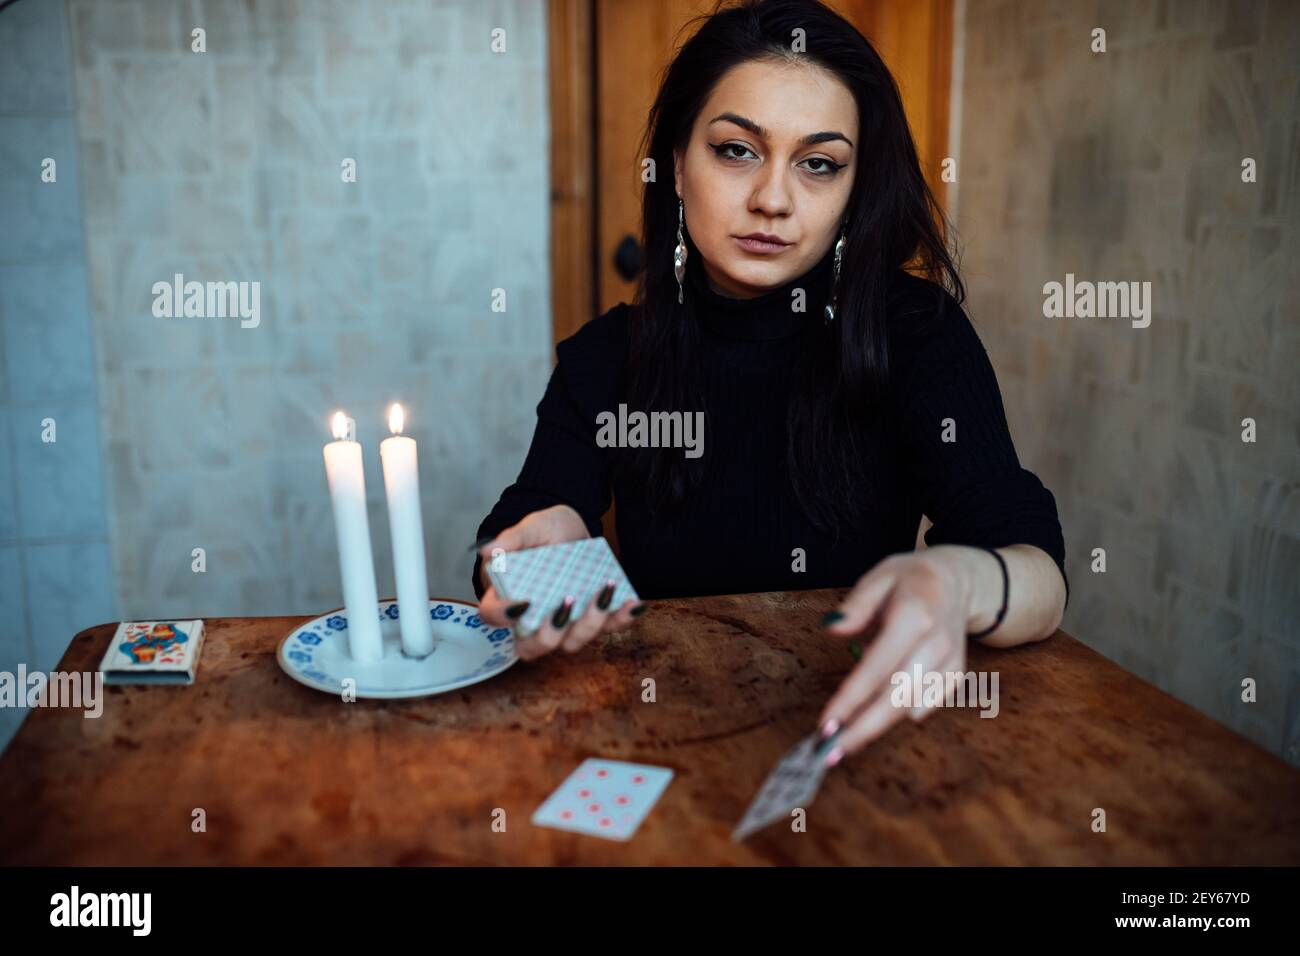 choose a card from the hands of a fortune teller. a woman tells fortunes during a magical ritual. belief in mysticism Stock Photo